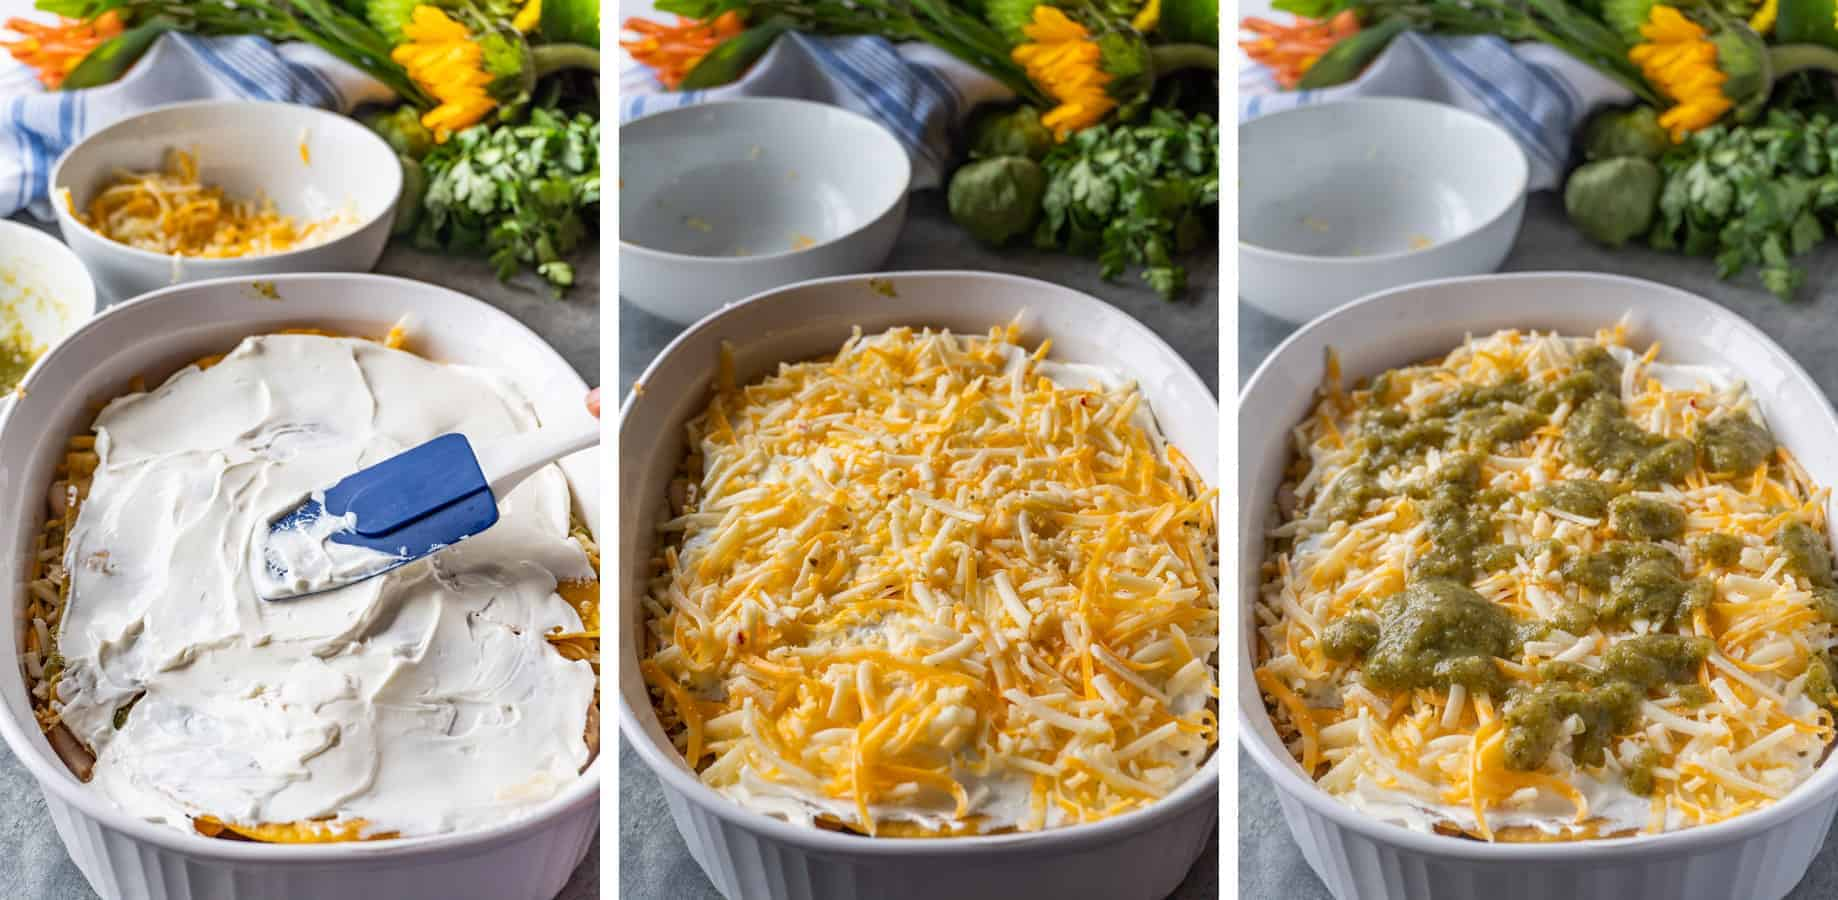 Shredded Chicken Enchiladas, a delicious and easy dinner that can be made in no time! #enchiladas #chicken #rotisserie #atablefullofjoy #leftover #easy #green #corntortillas #cassserole